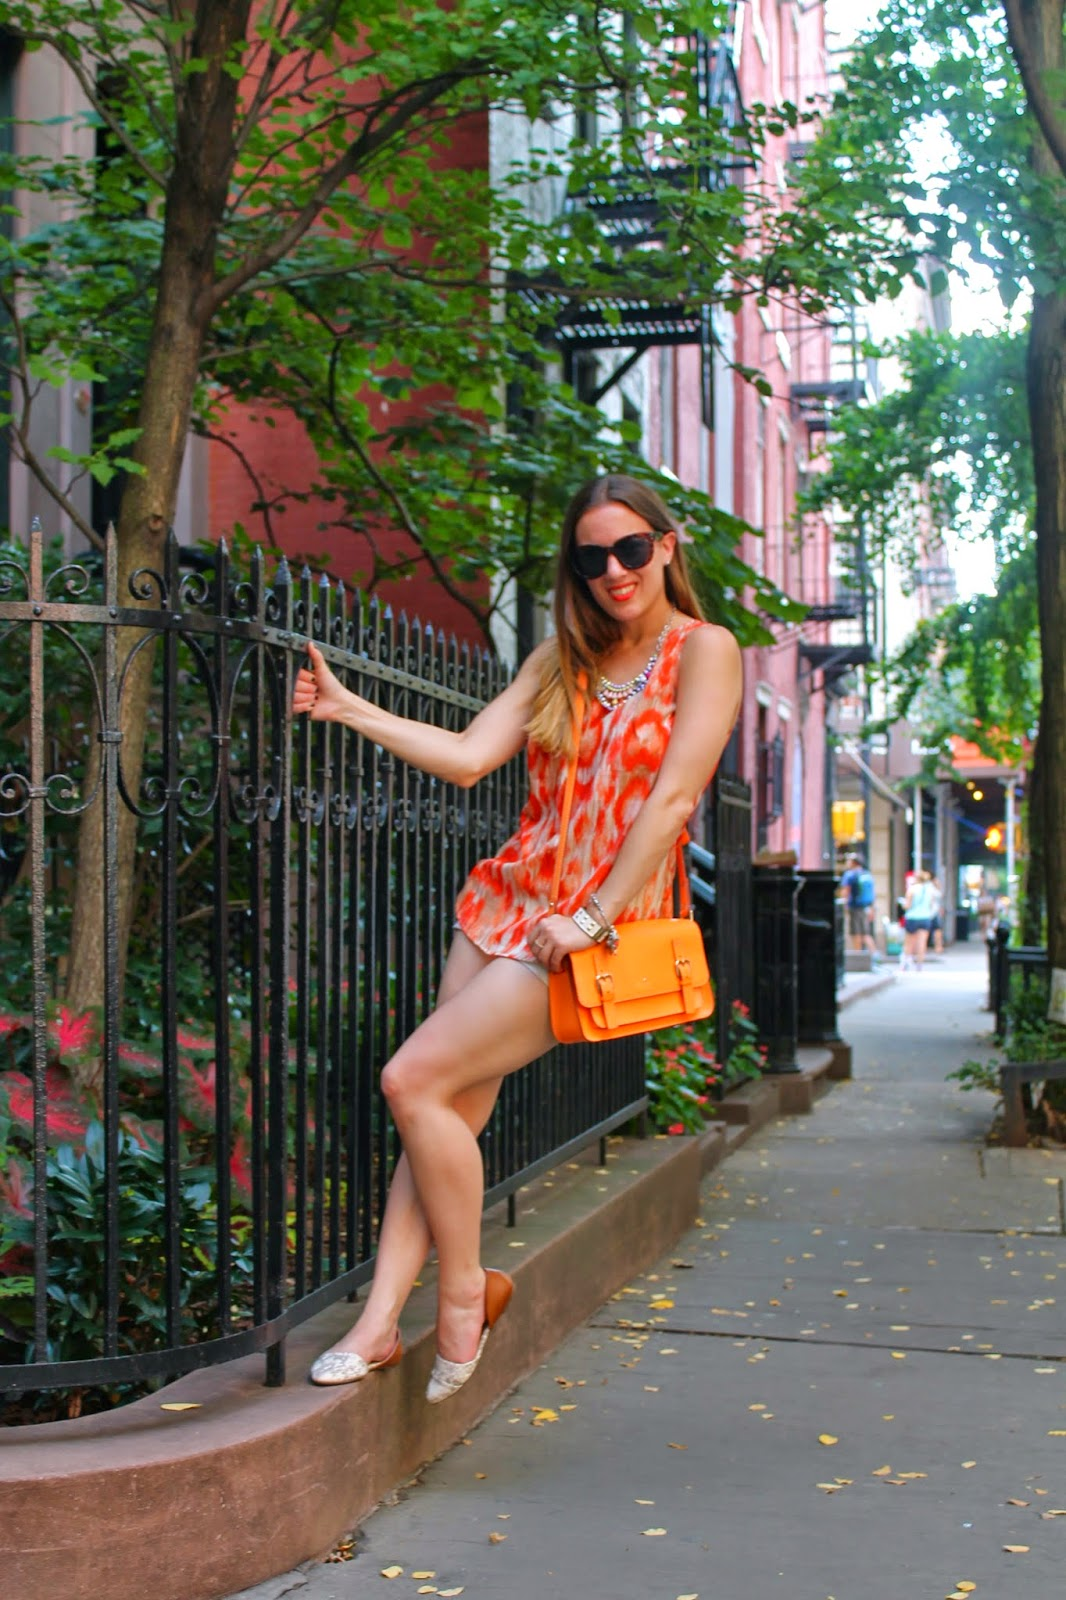 Cynthia Rowley, TJ Maxx, American Eagle, Kate Spade, nordstrom, DV Dolce Vita, Brighton, New York, NYC, Manhattan, Soho, West Village, fashion, style, fashion week, fashion blog, style blog, look book, neon, summer style